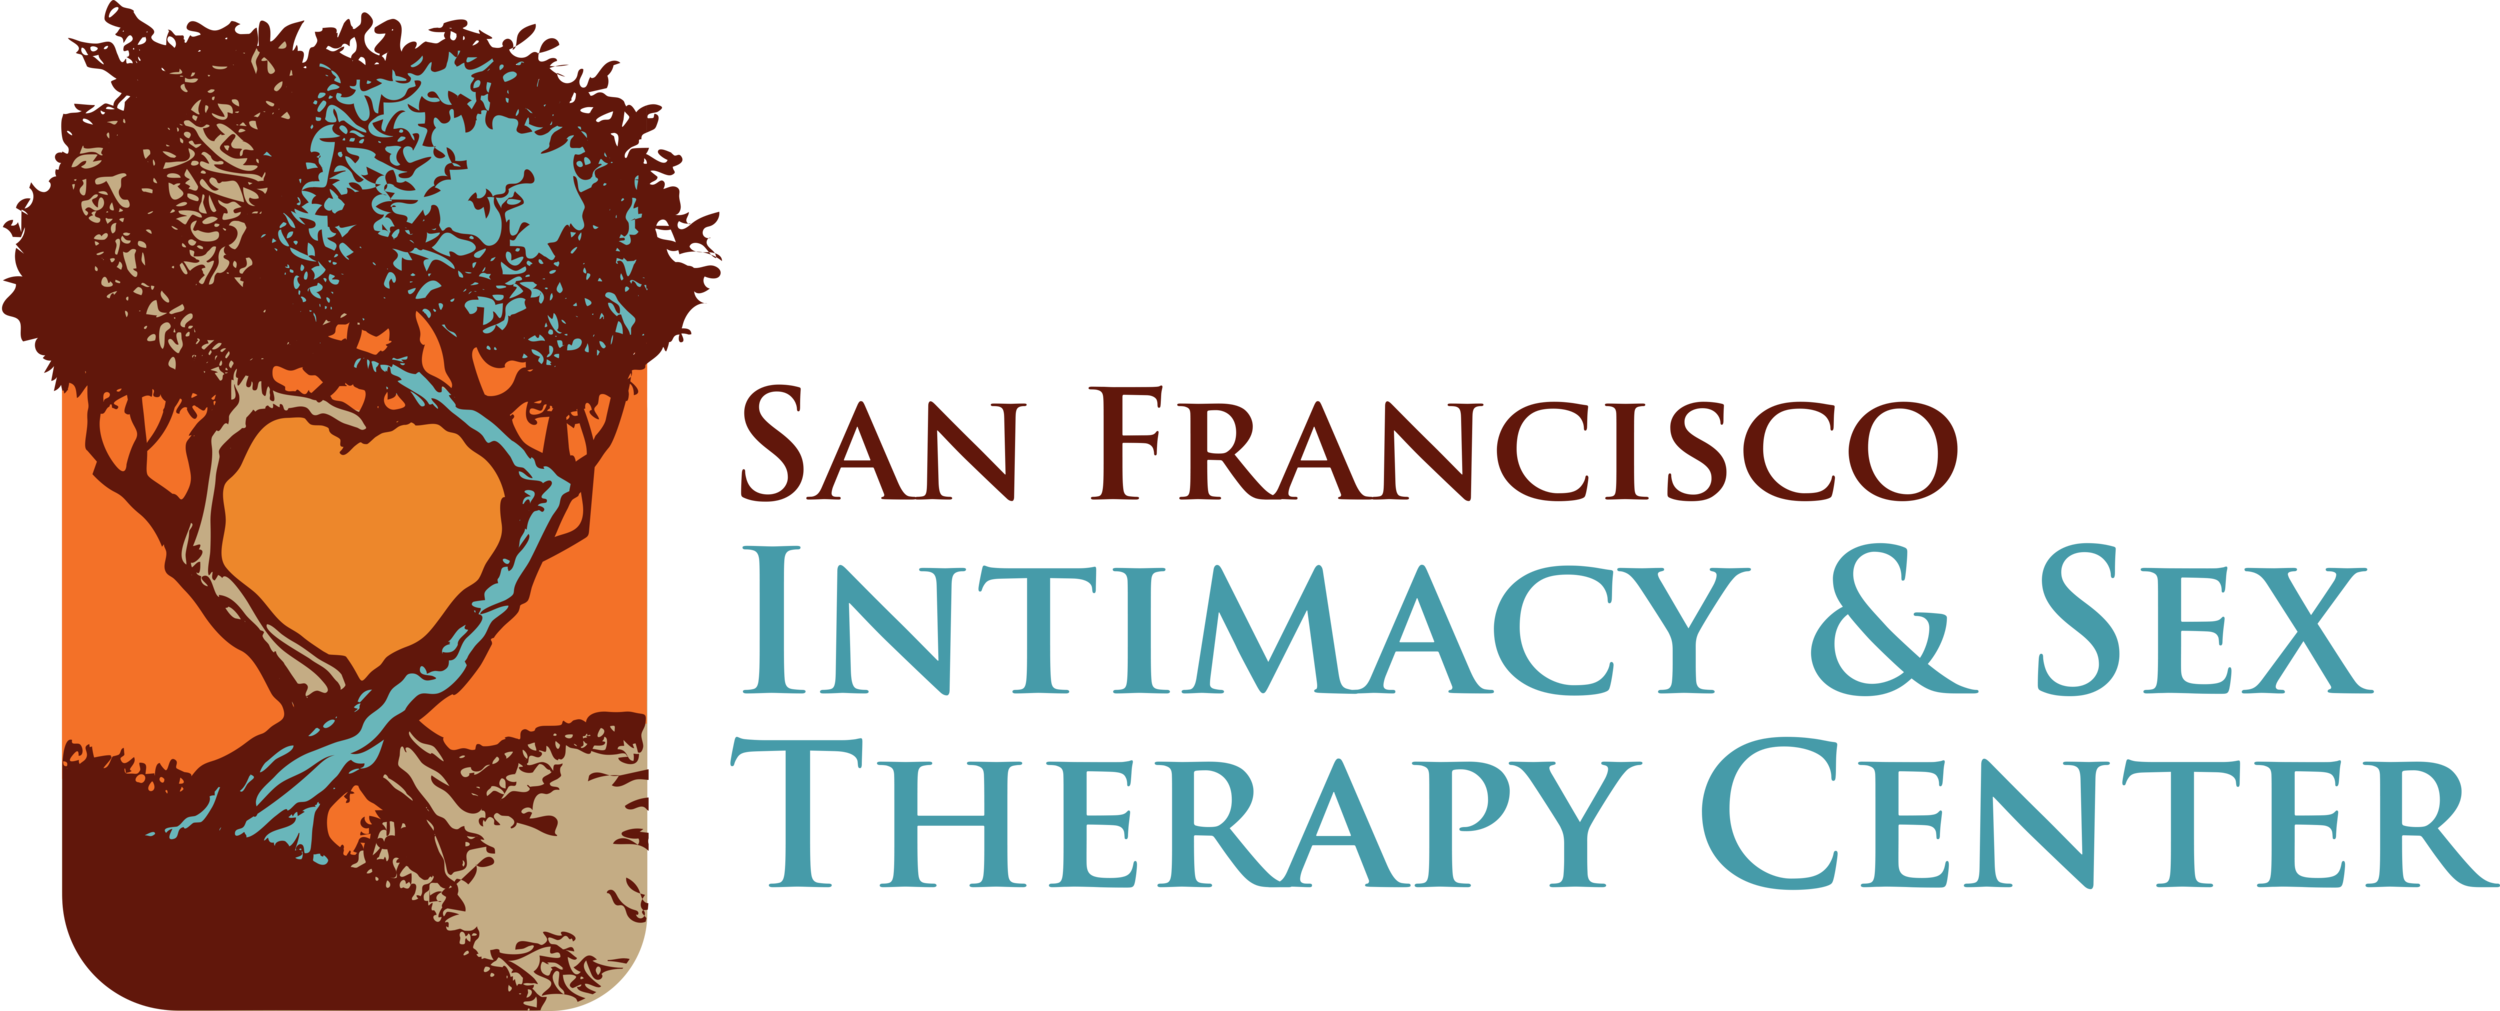 Also a Warm Welcome  - to our new sister clinic, The San Francisco Intimacy & Sex Therapy Center, which is a highly specialized East Bay therapy center designed to promote healthy intimacy and sexual expression without shame or stigma.